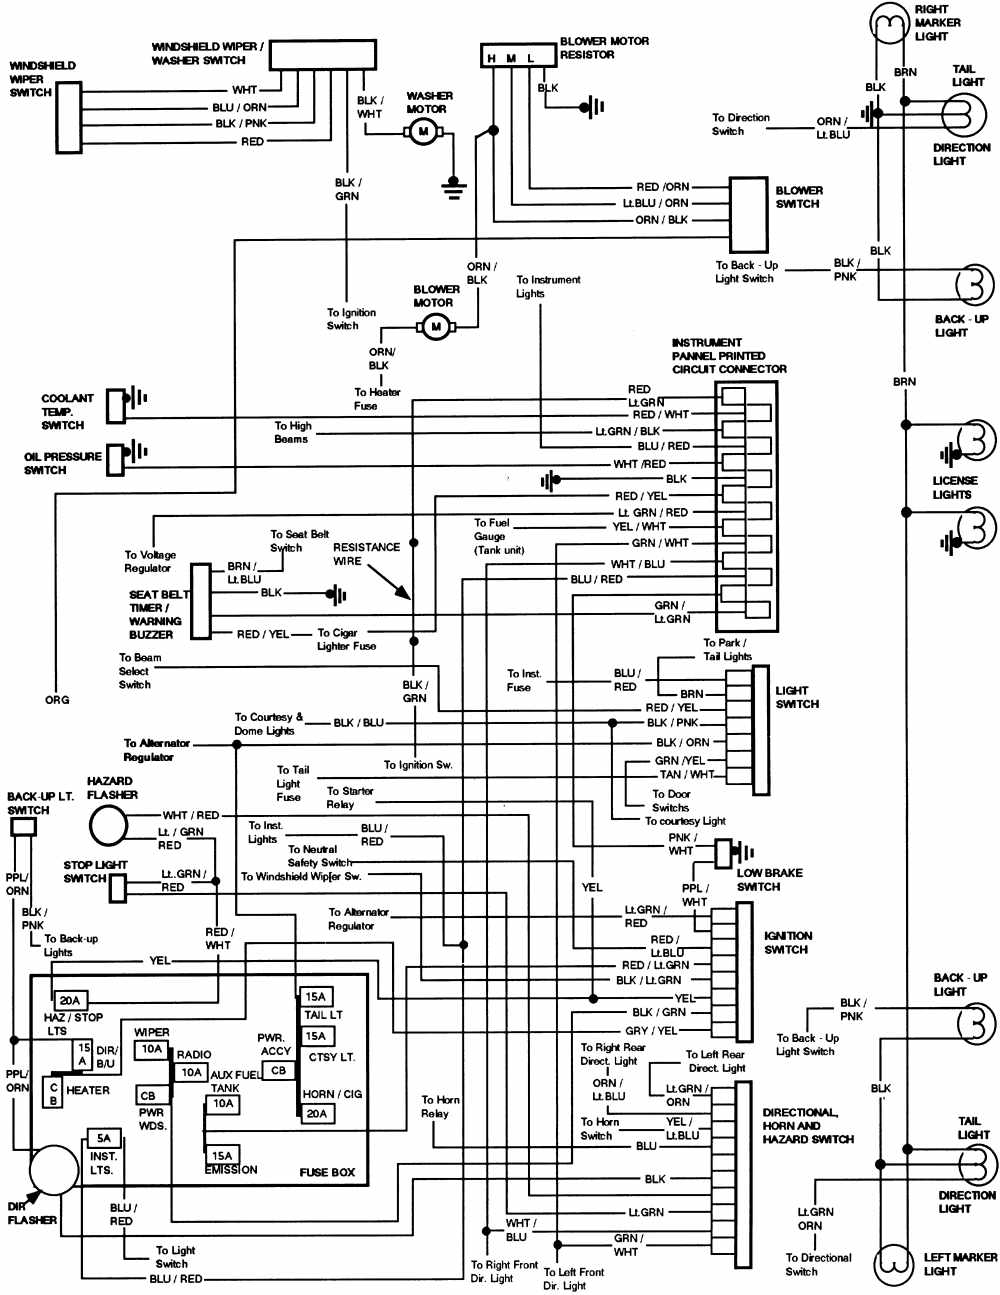 1984 ford e 350 wiring diagram free 1984 ford e 350 wiring schematic